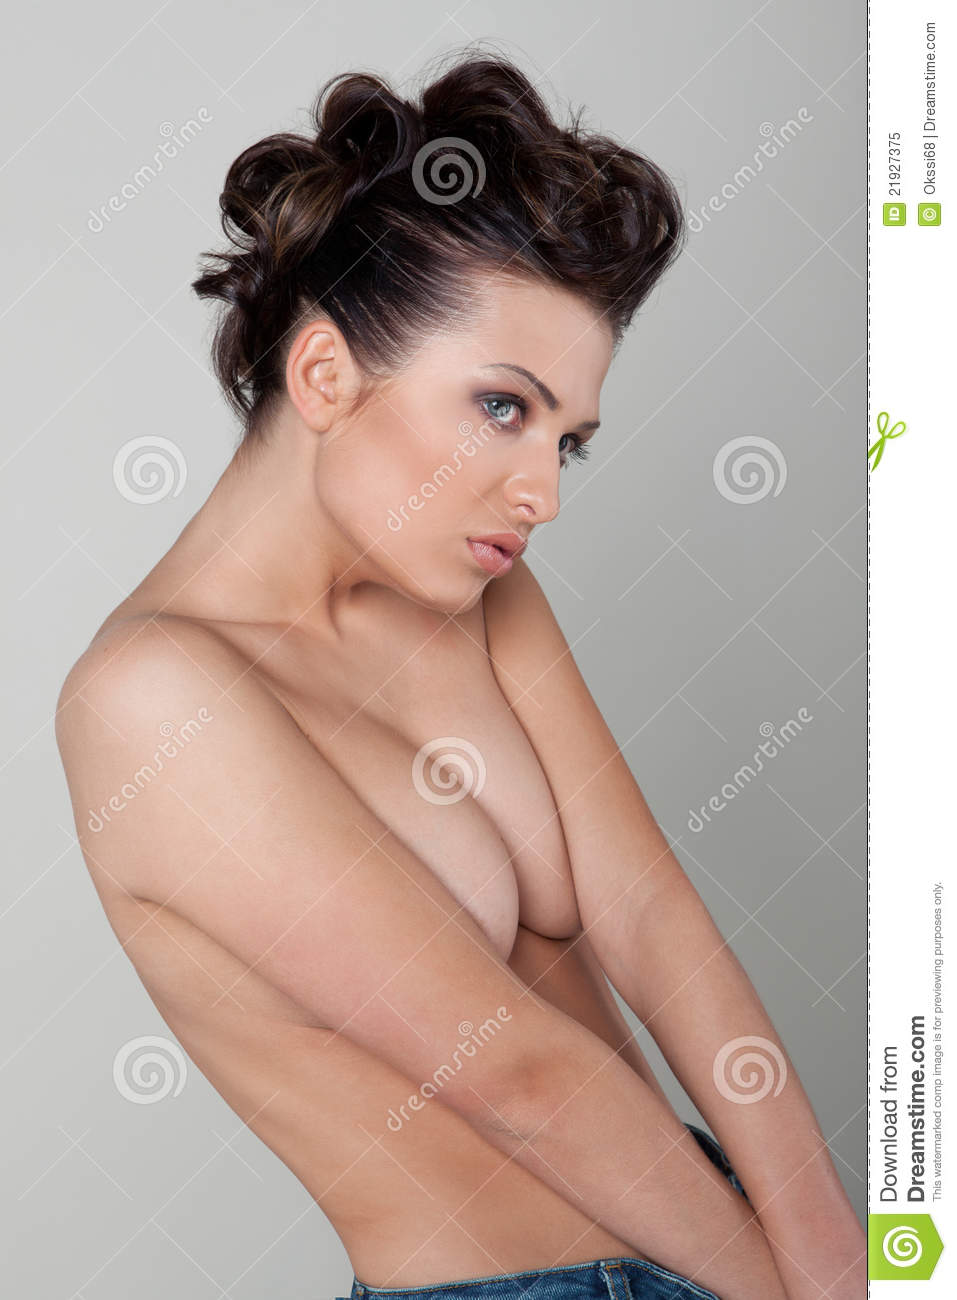 Woman with bare shoulders